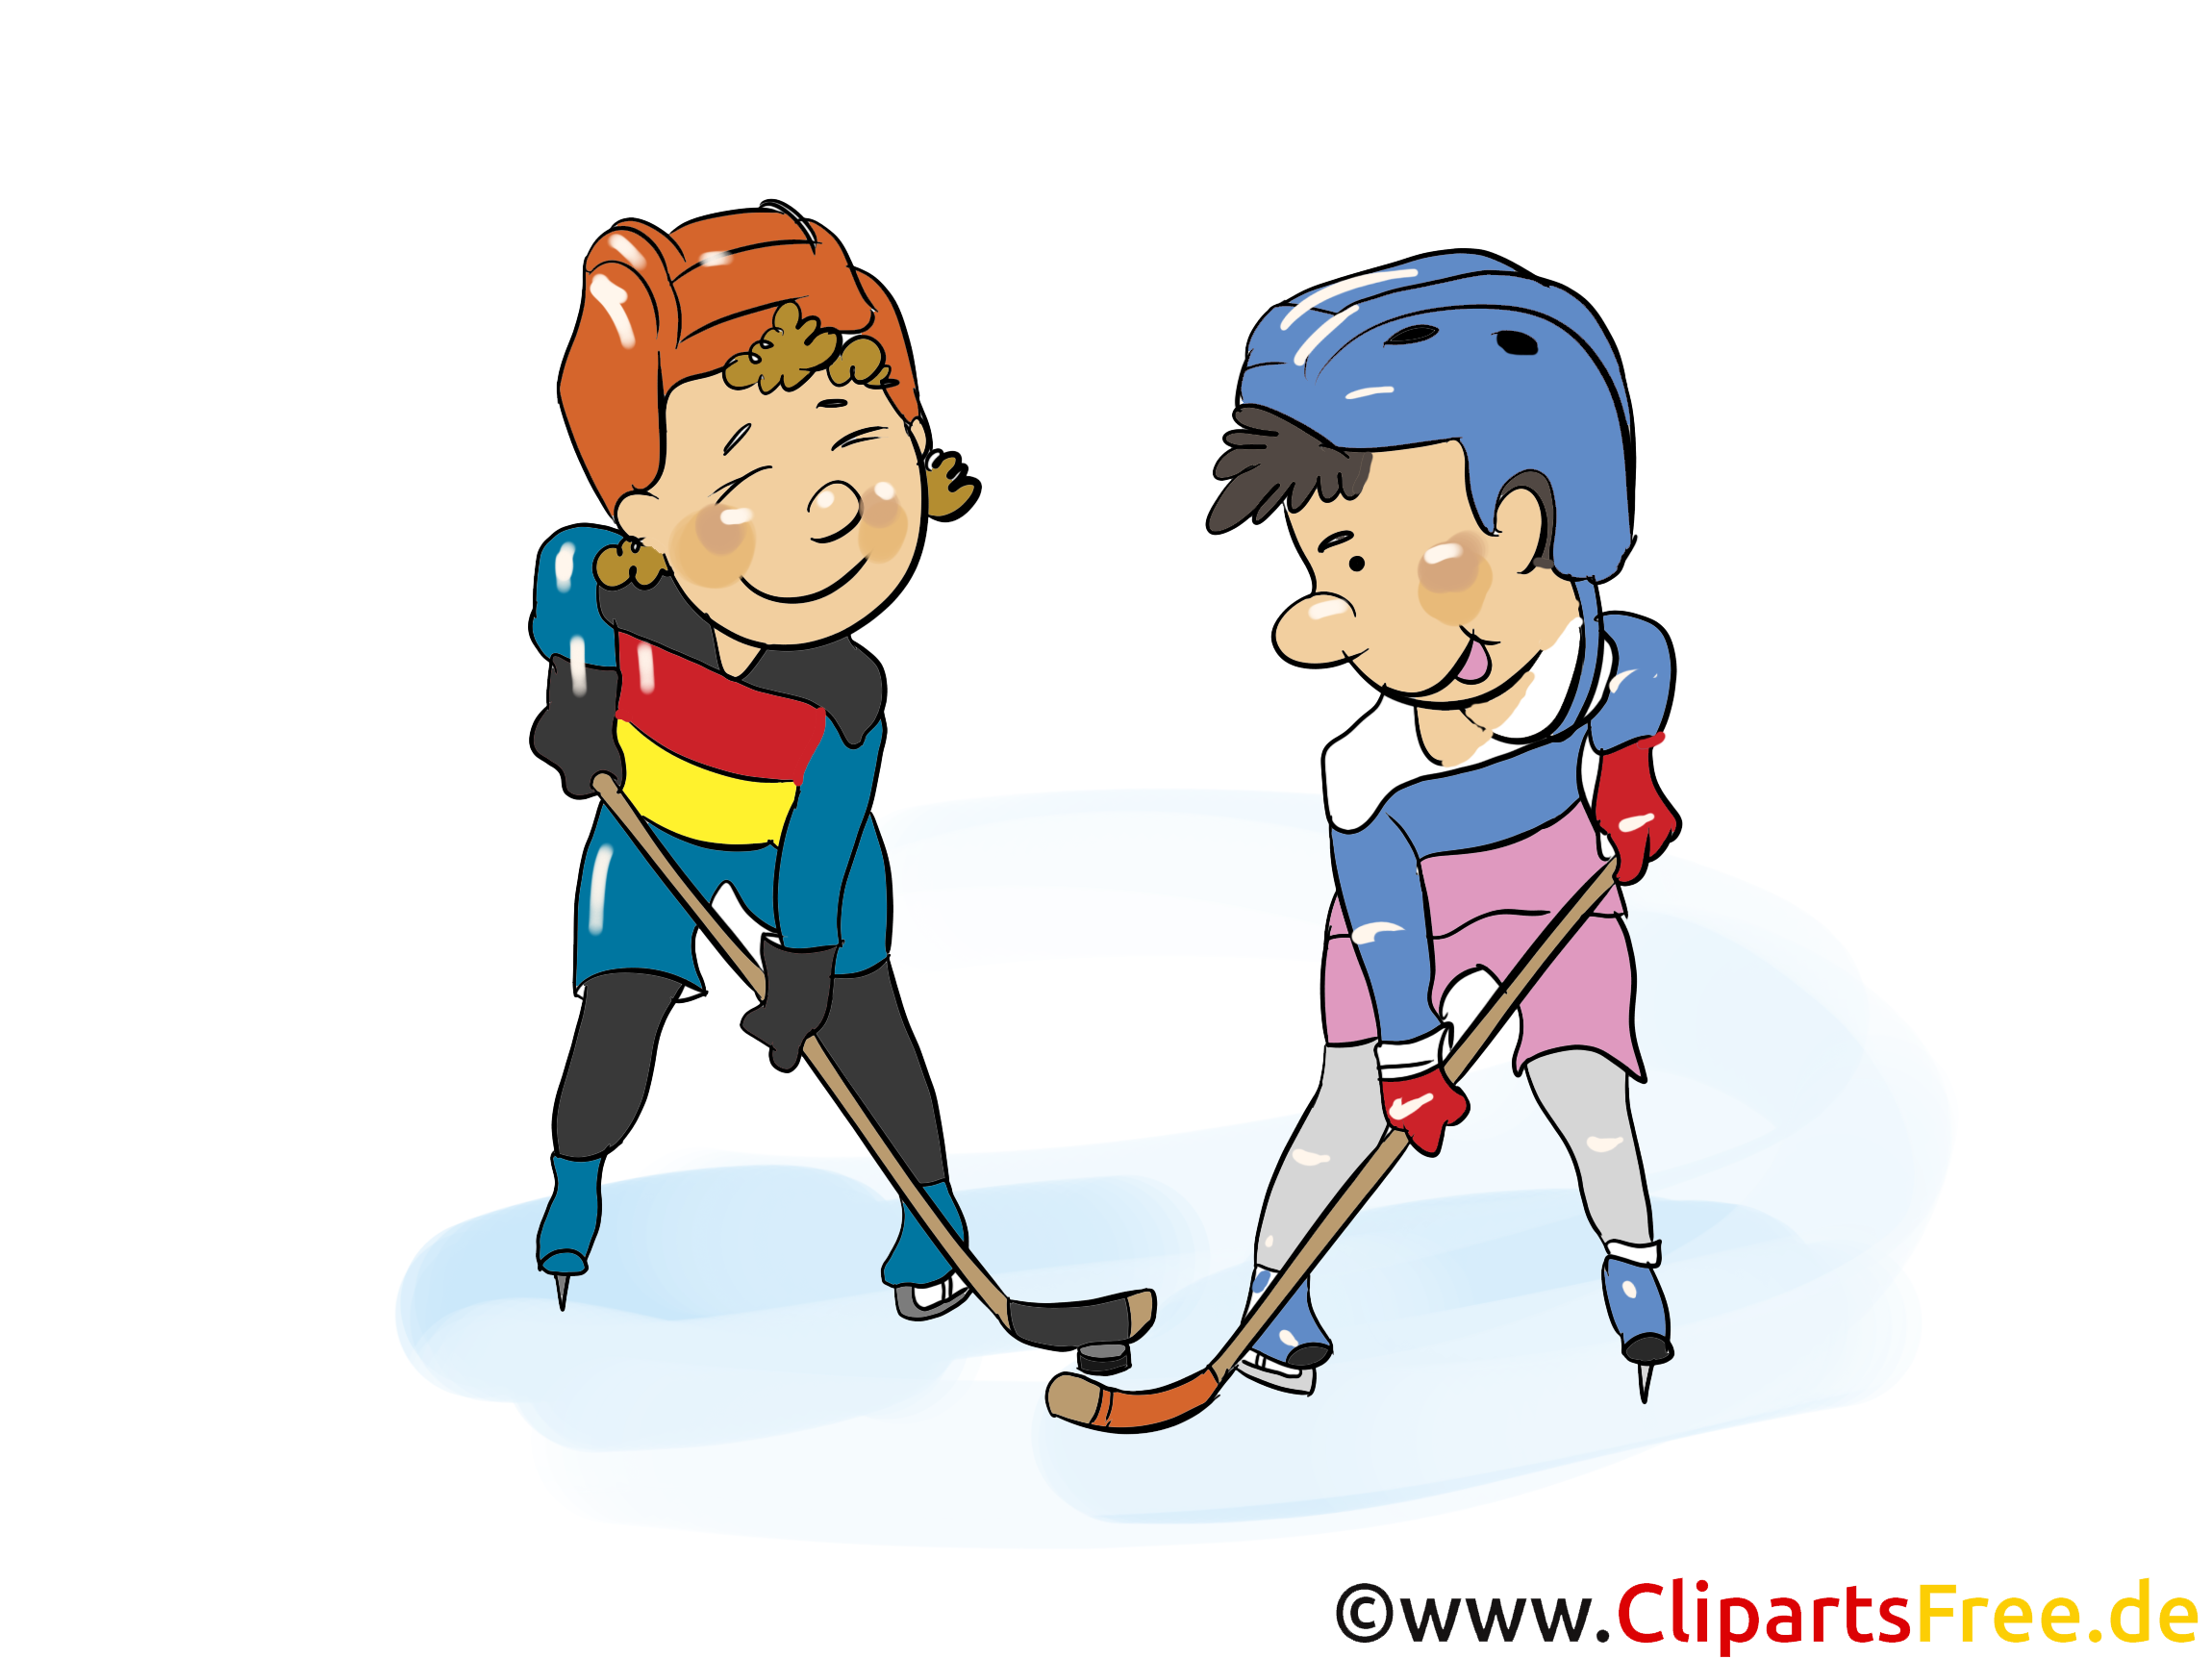 Hockeyeur dessin hockey cliparts t l charger hockey sur glace dessin picture image - Dessin hockey sur glace ...